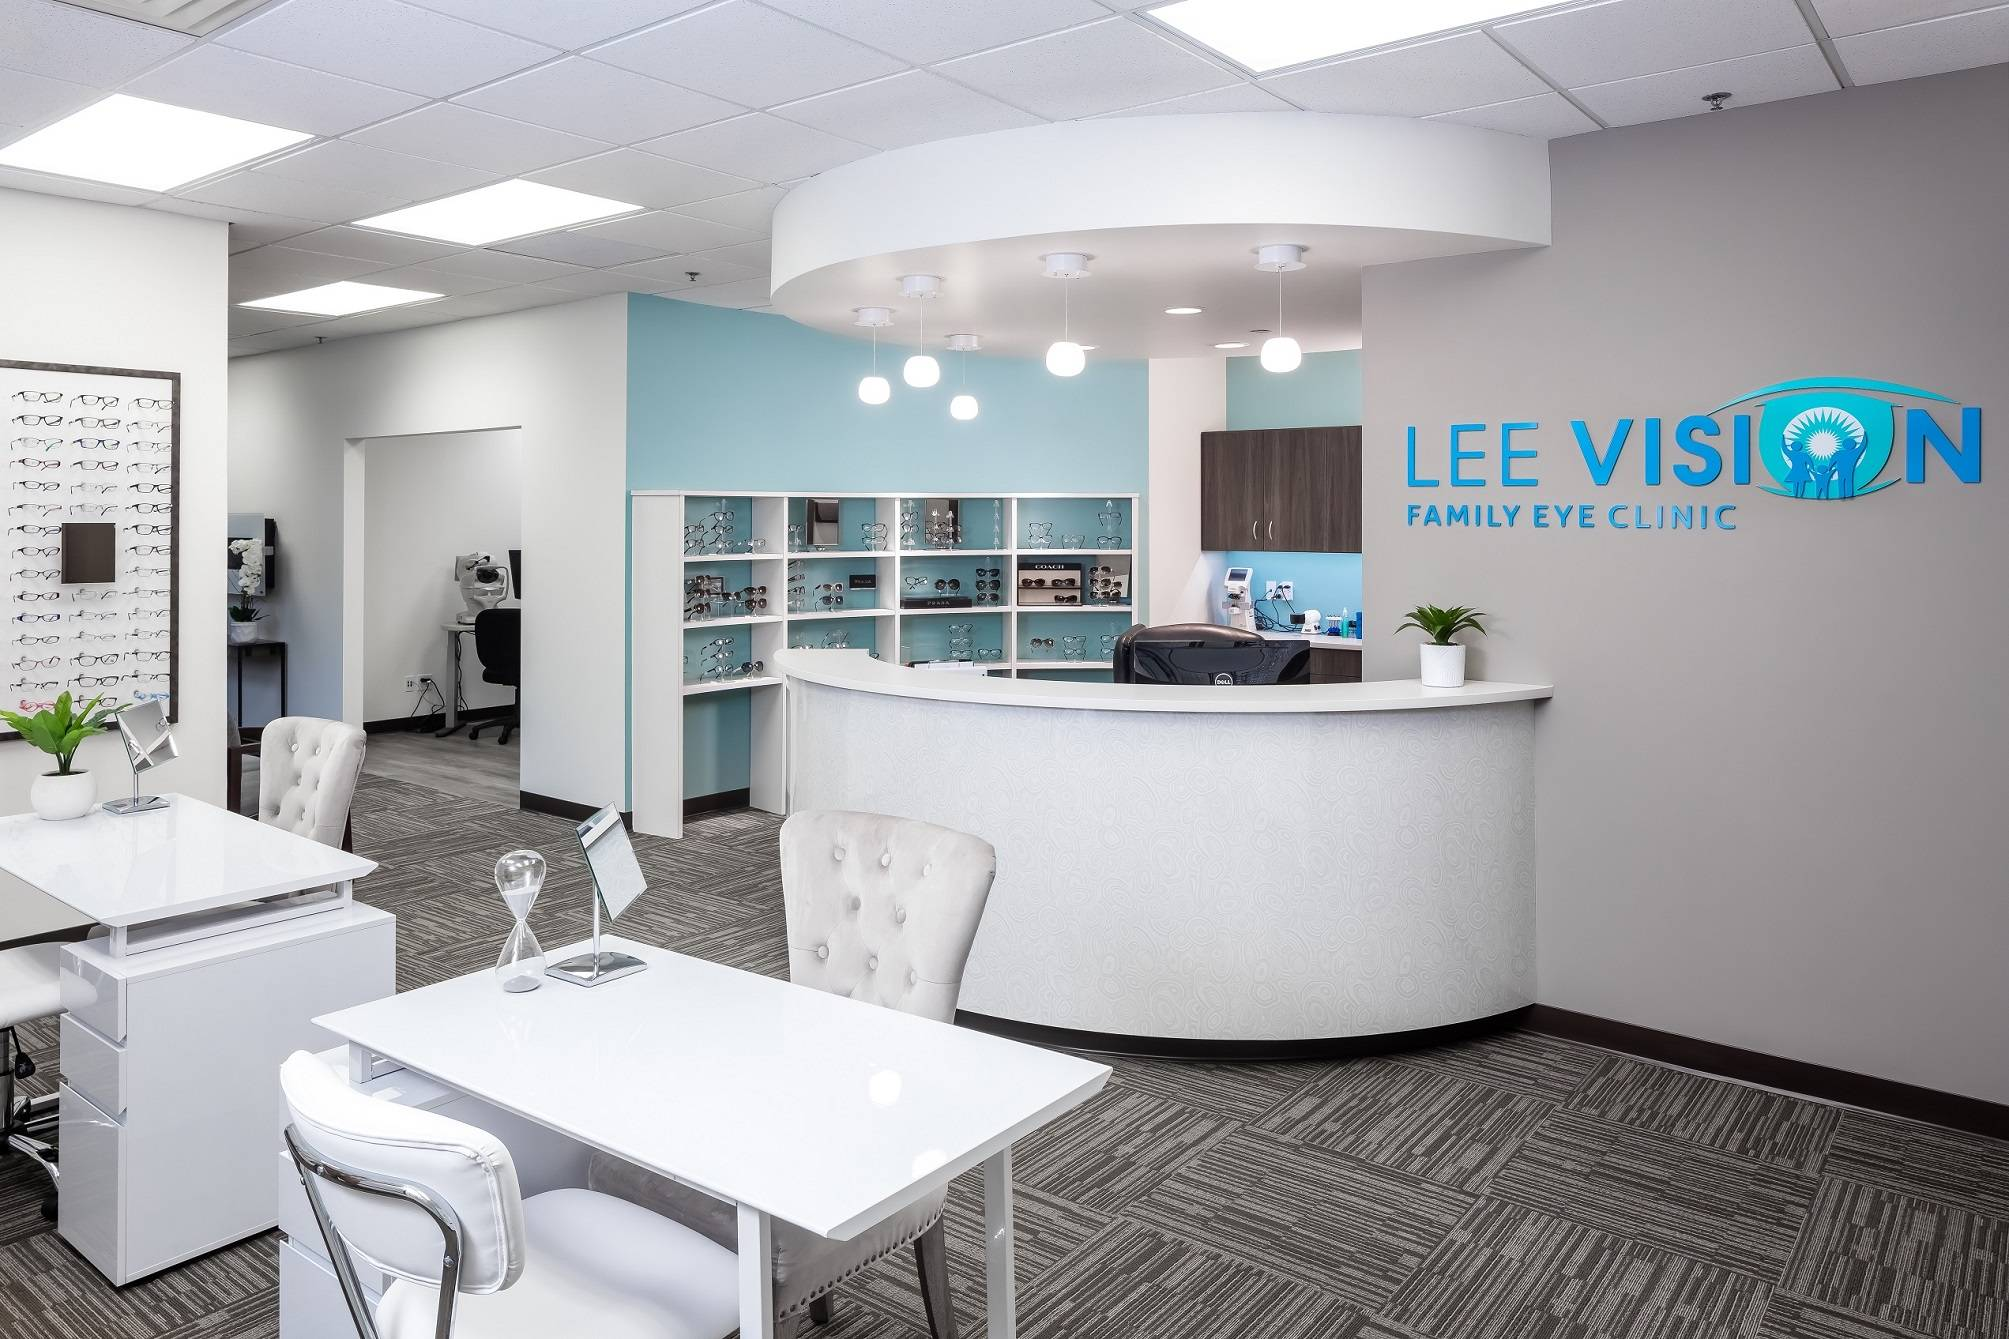 Wel e to Lee Vision Family Eye Clinic Lee Vision Family Eye Clinic